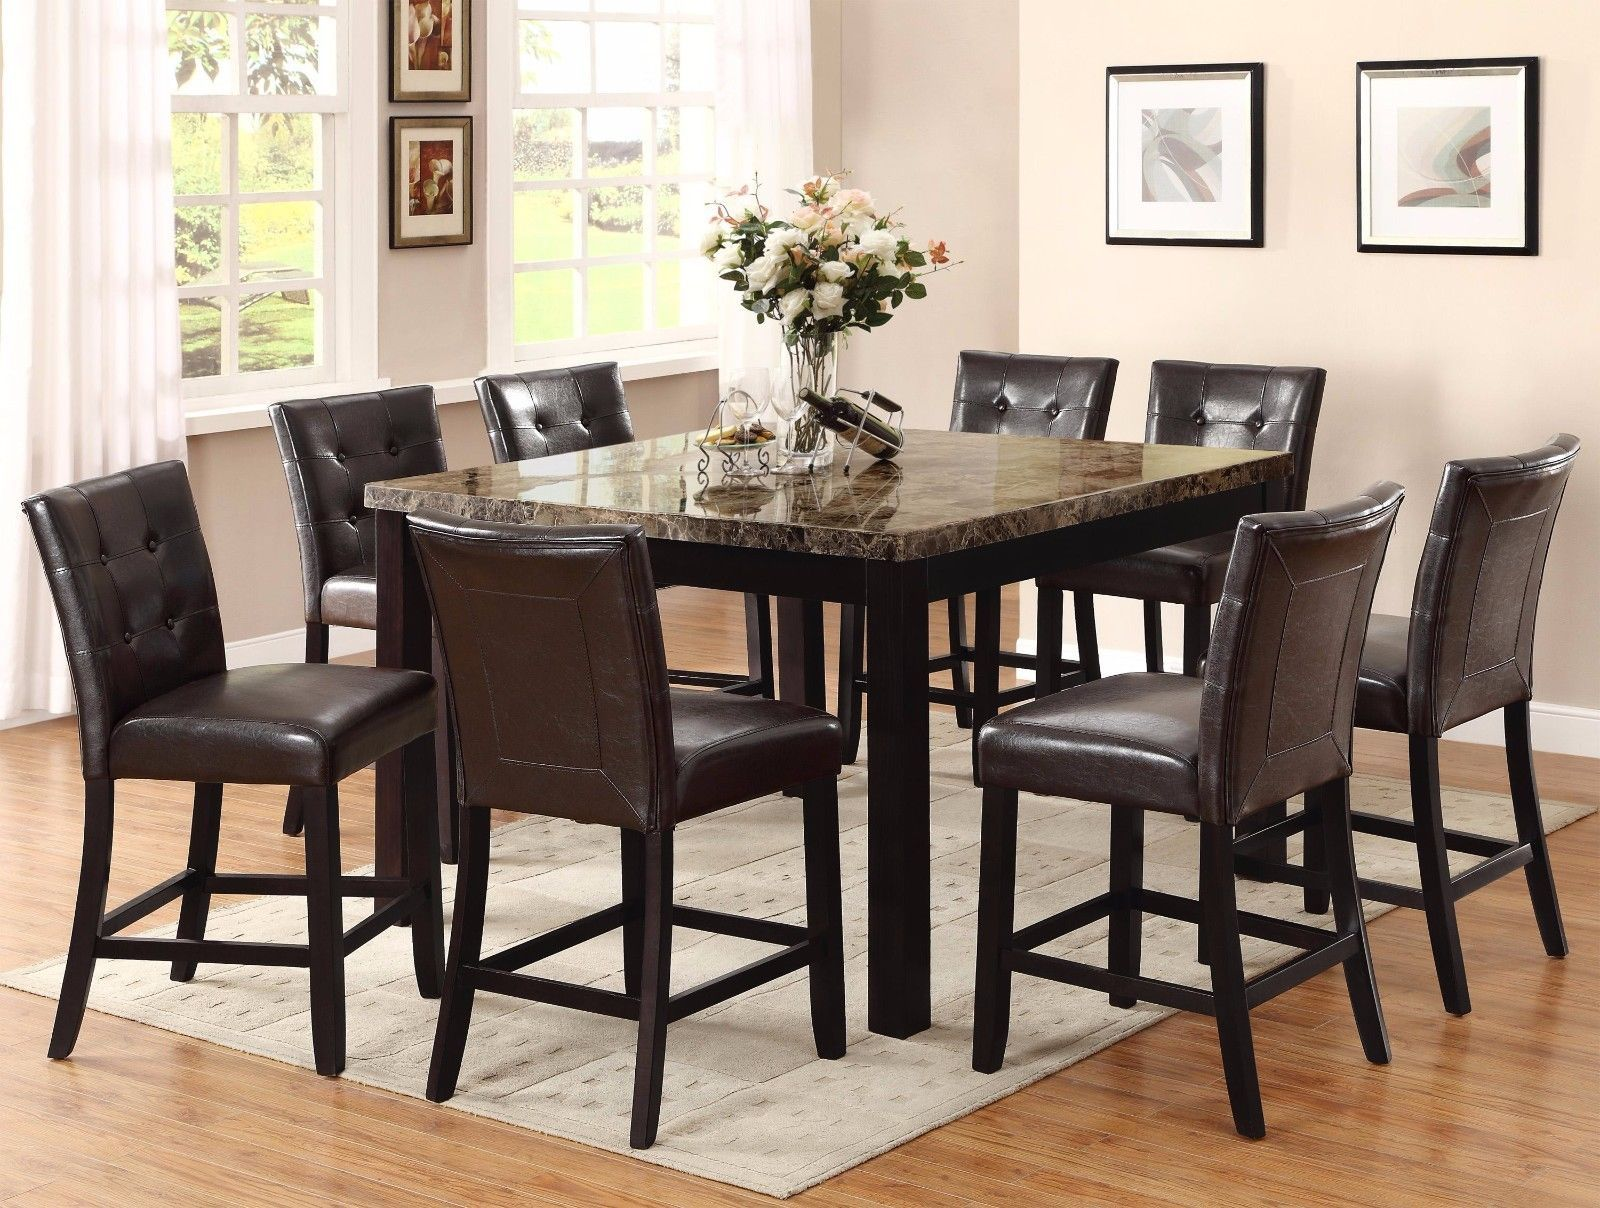 Crown Mark 2767 Dining Room Set 9pc. Bruce Counter Height Contemporary Style